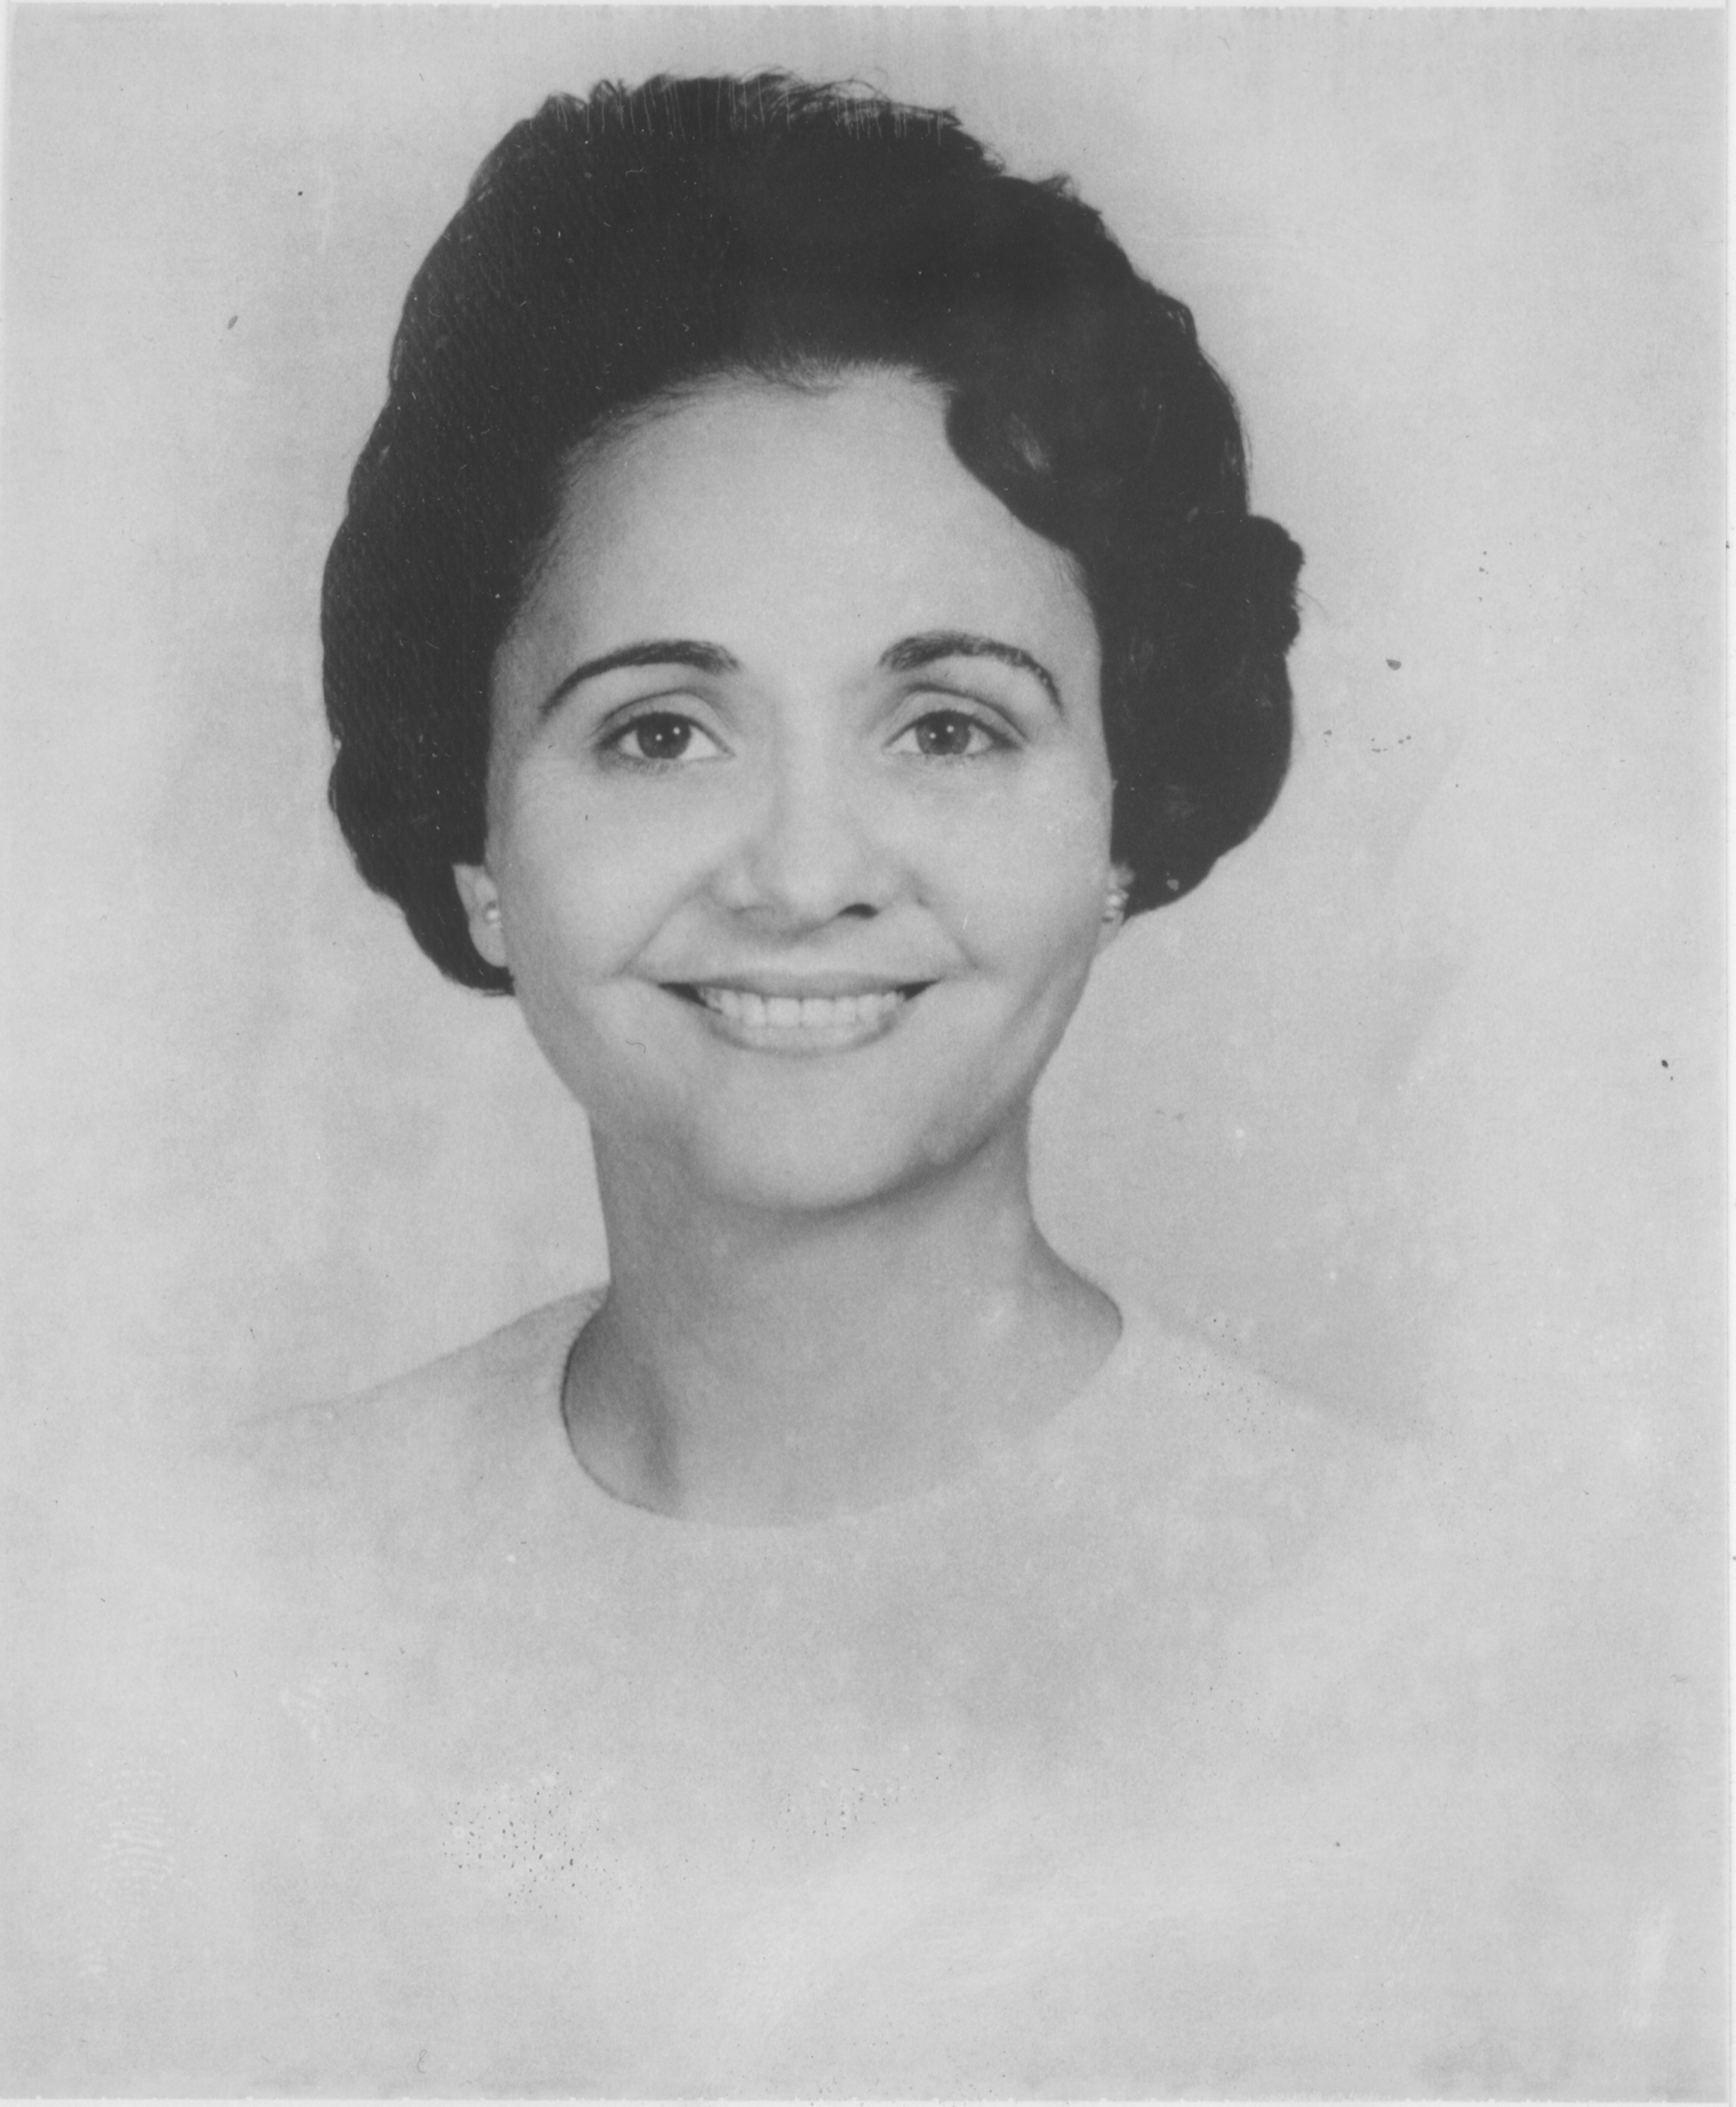 Portrait of Evelyn M. Wasson, March 1969 image